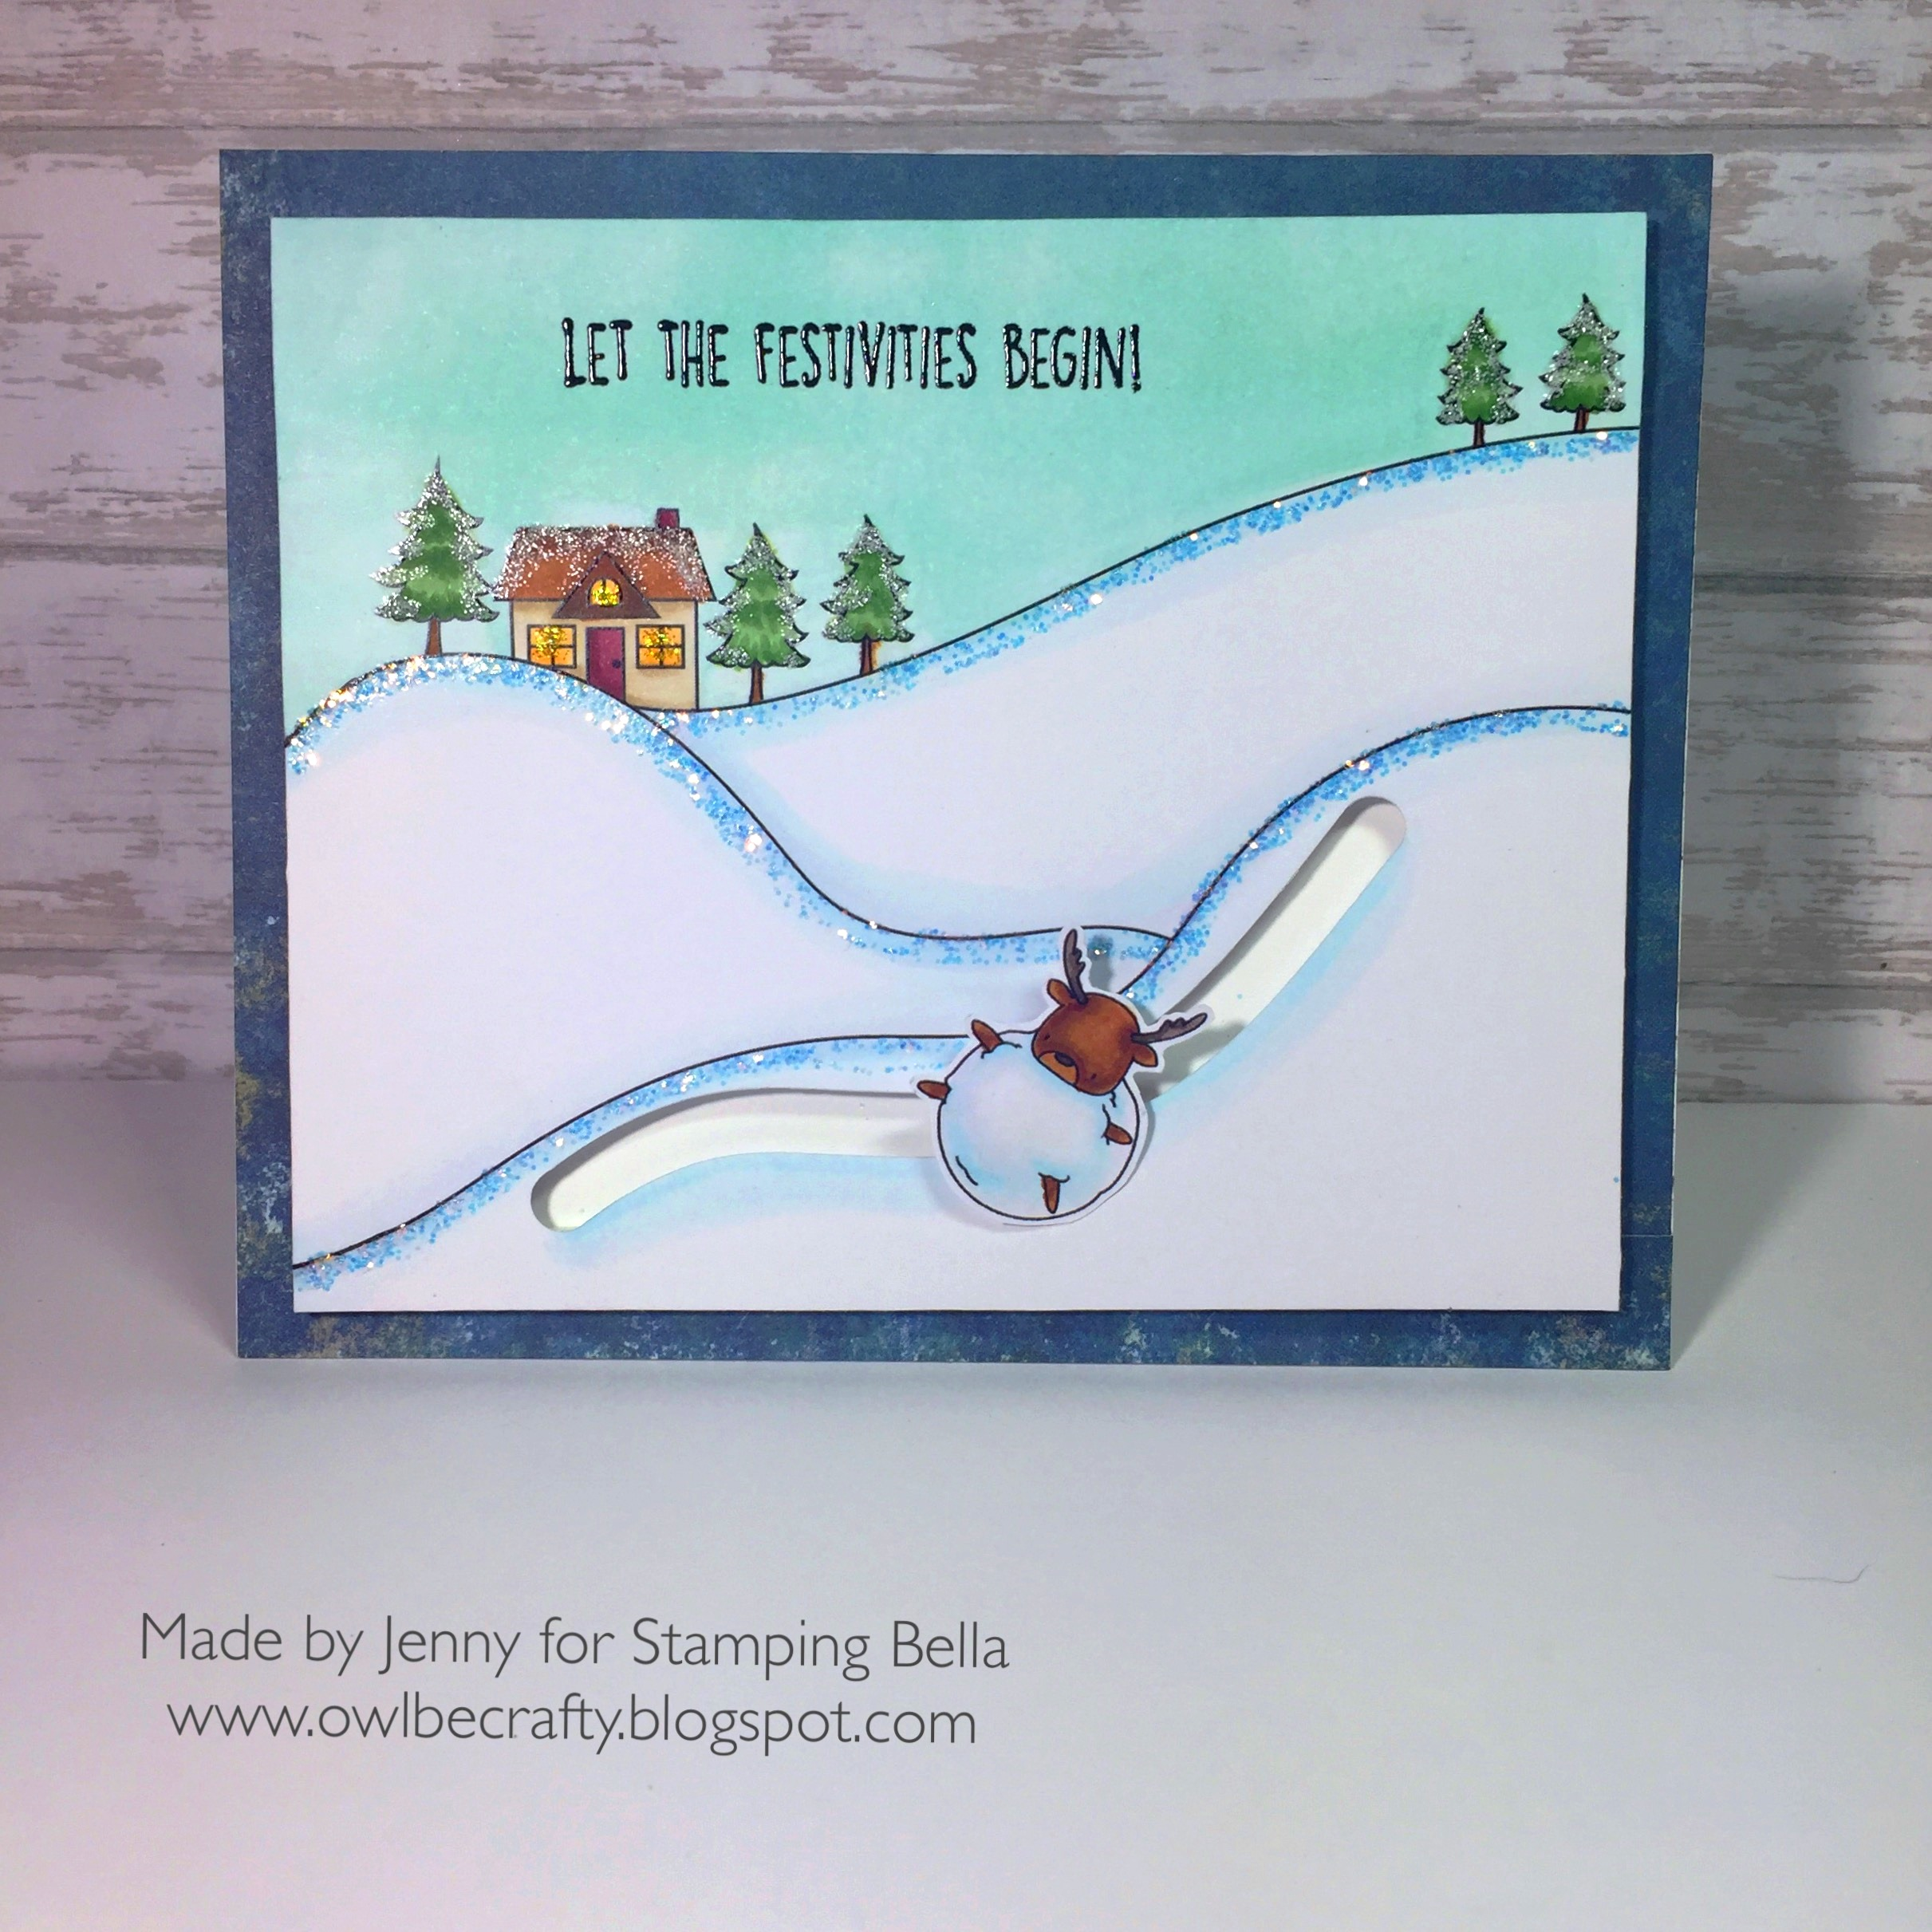 Stamping bella rubber stamps used:WINTER BACKDROP, and LITTLE BITS WINTER TREE and DEERBALL Card by JENNY BORDEAUX